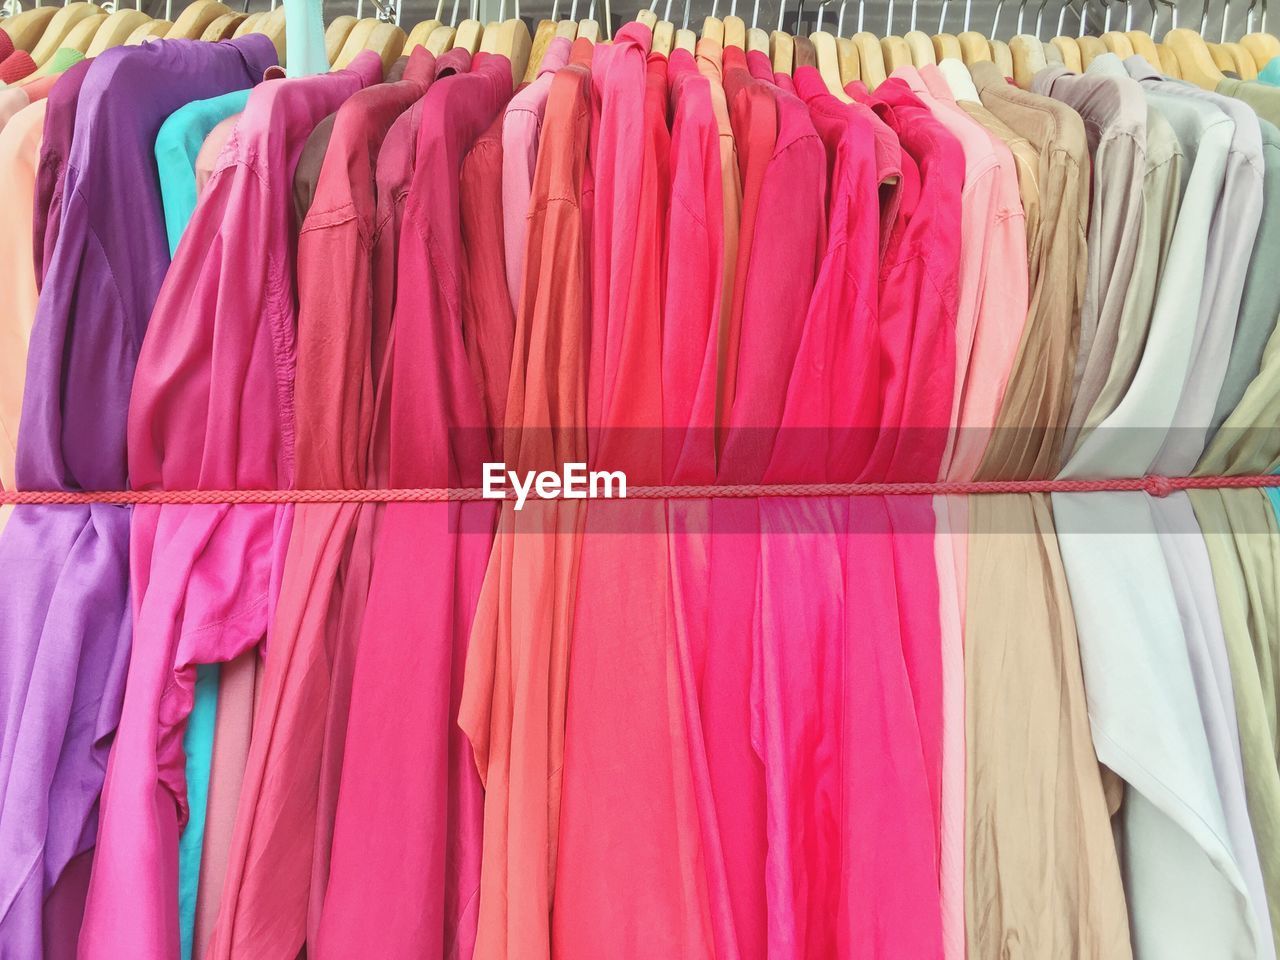 Close-Up Of Dress Handing For Sale In Store